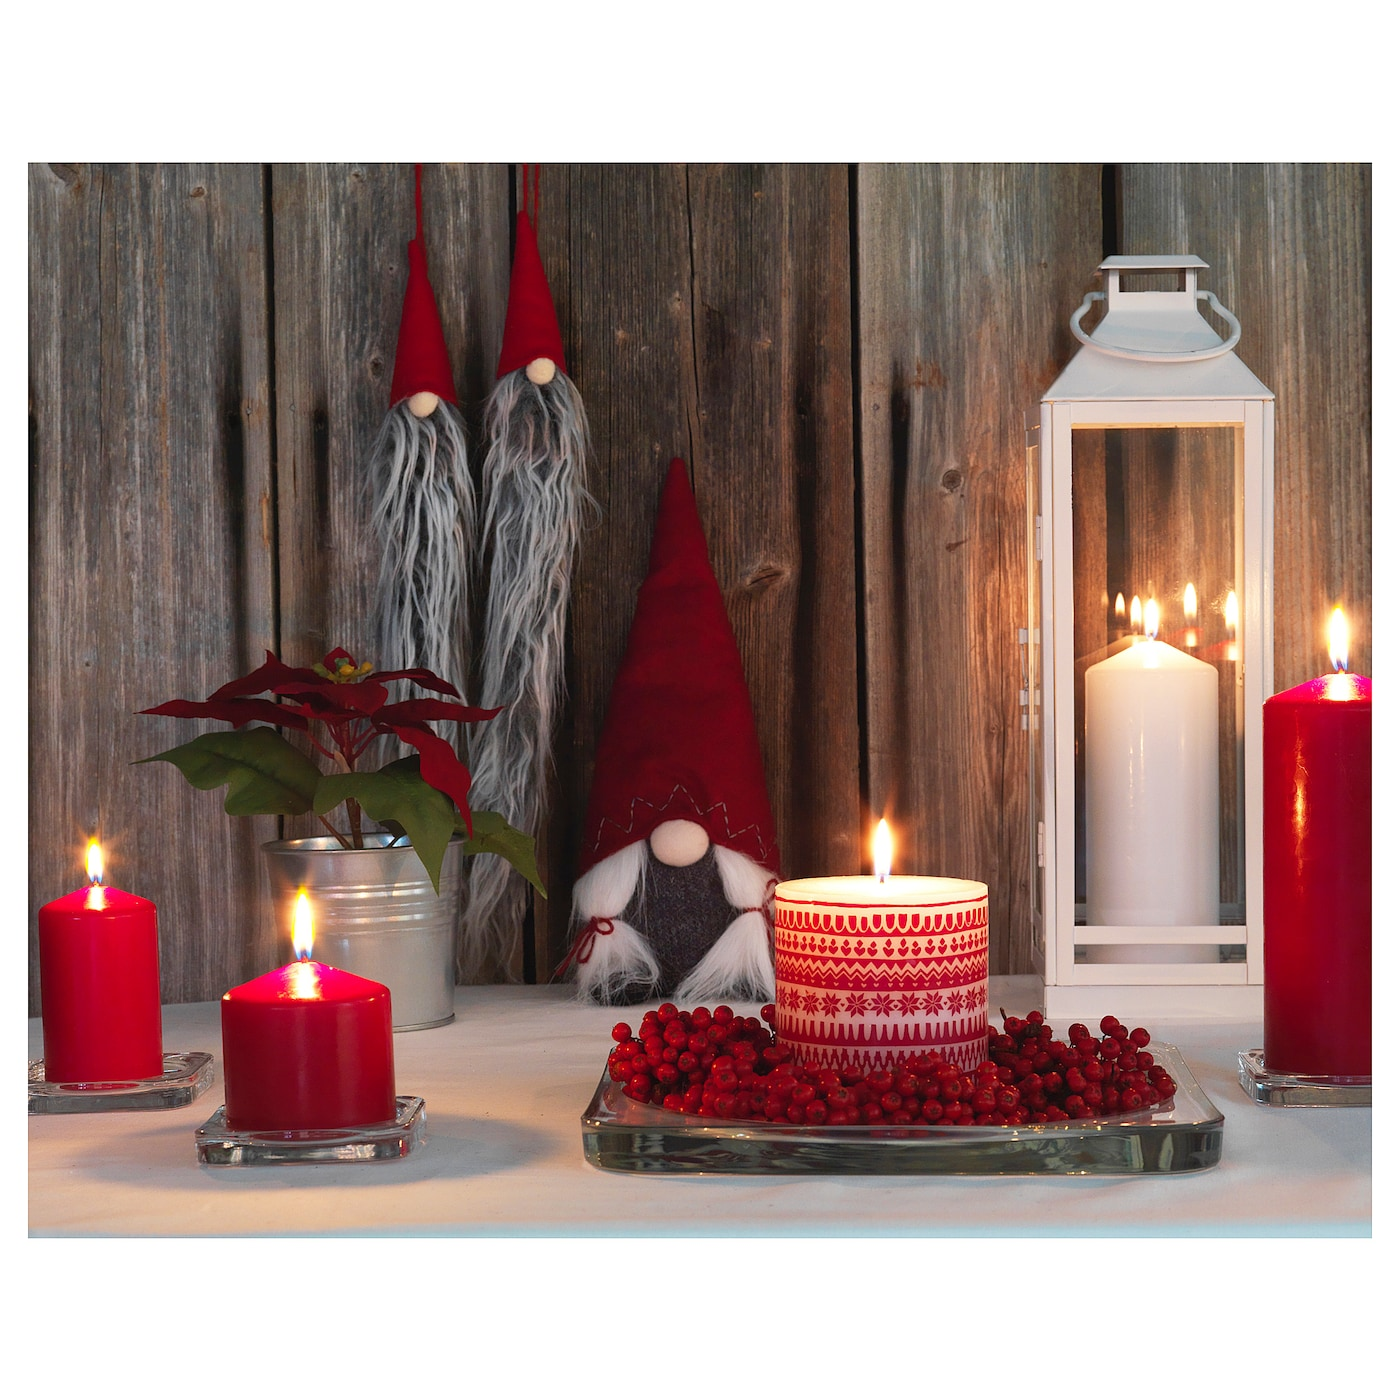 vinter 2017 unscented block candle patterned red 10 cm ikea. Black Bedroom Furniture Sets. Home Design Ideas